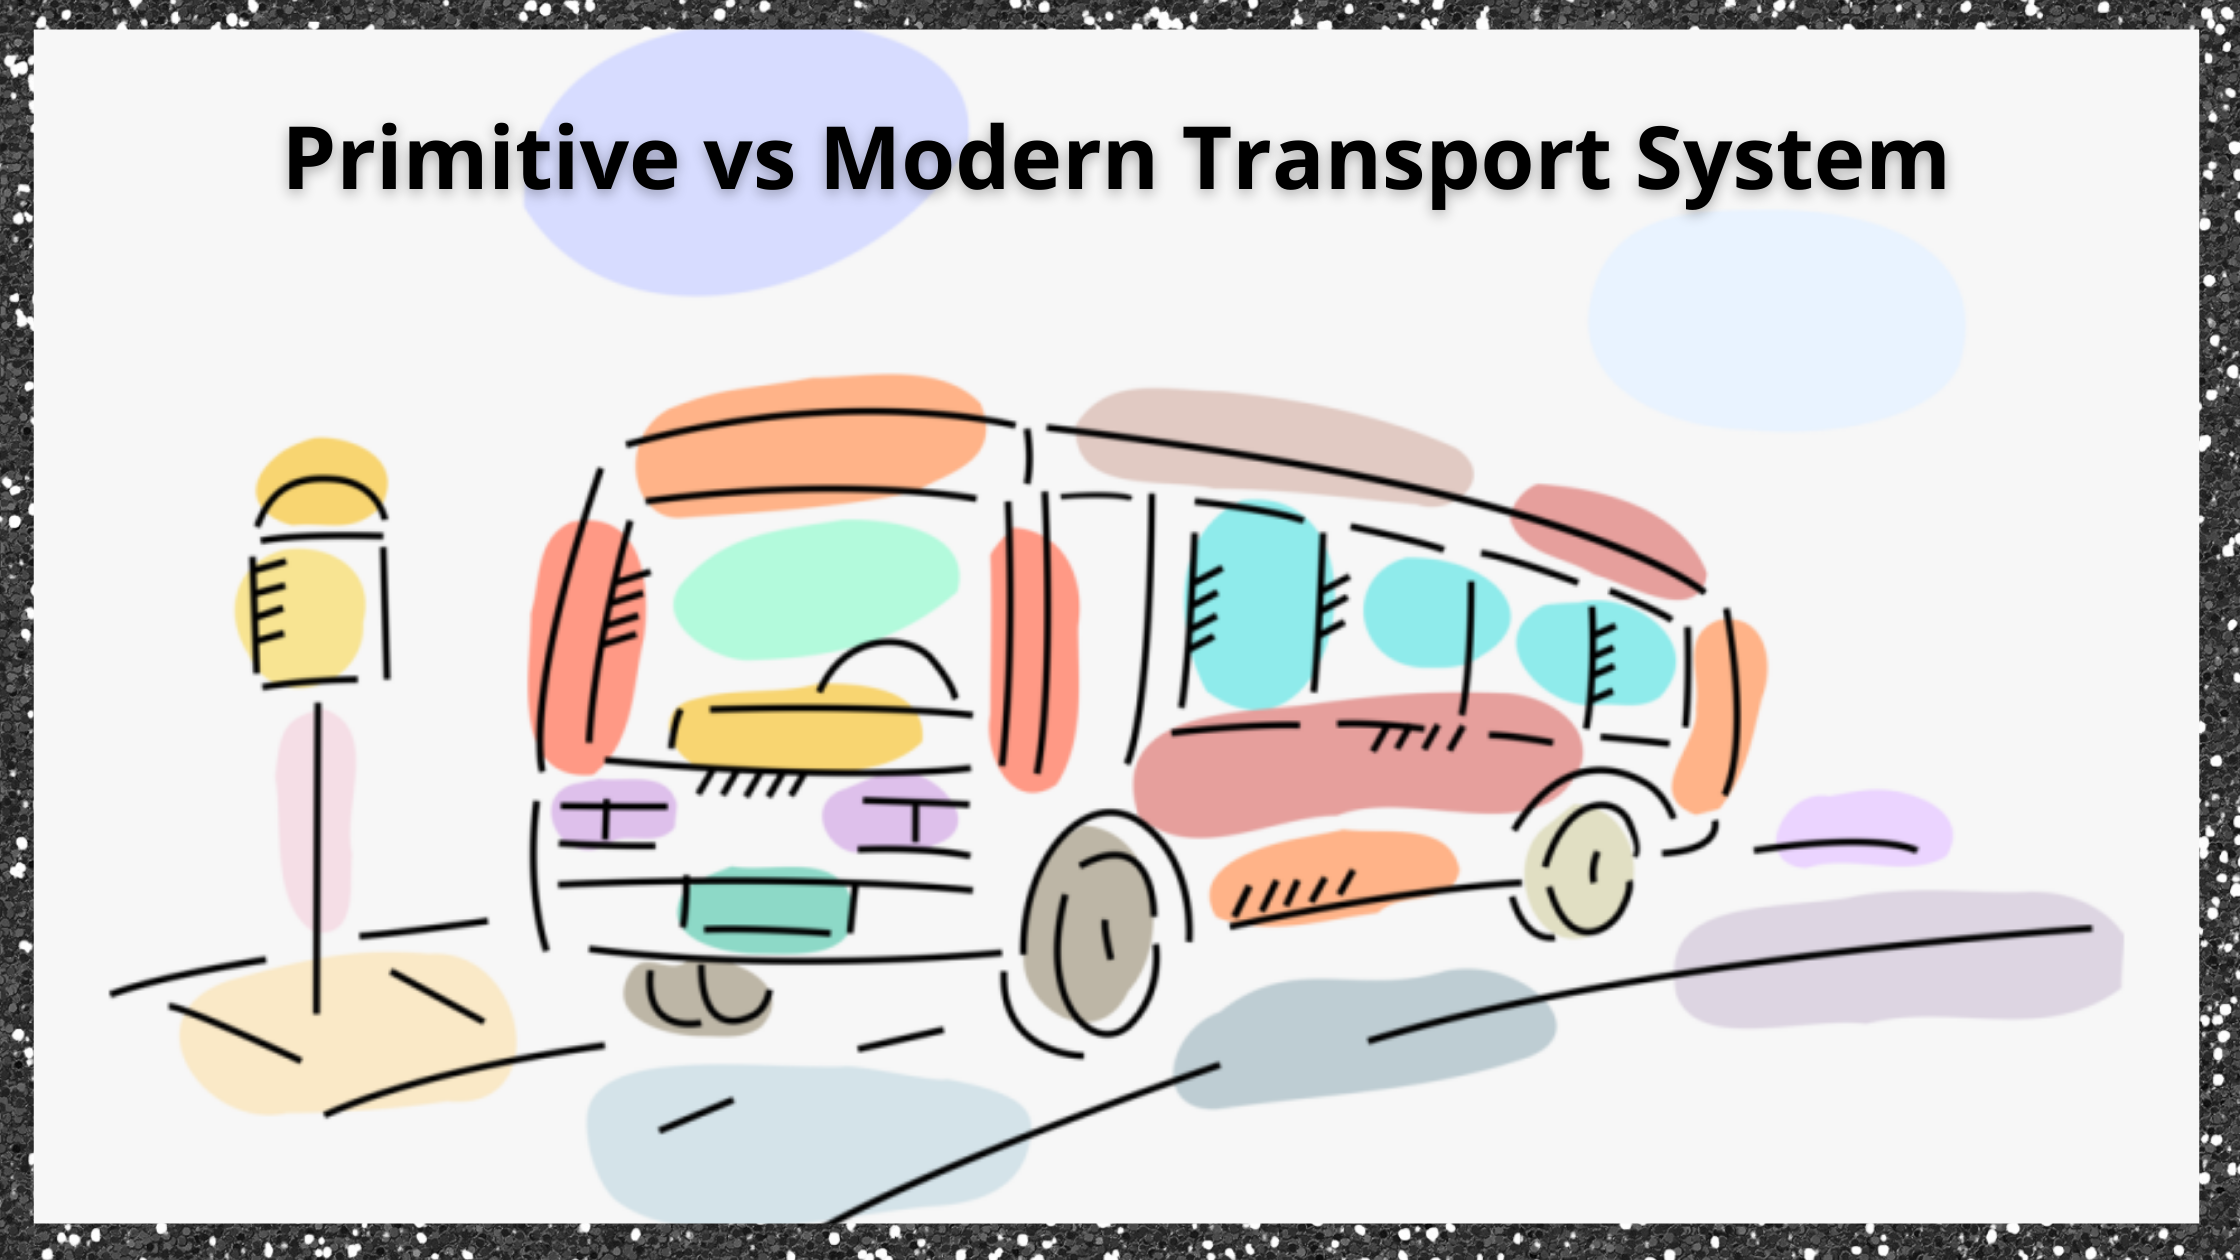 Modern Transport System VS Primitive Transport System